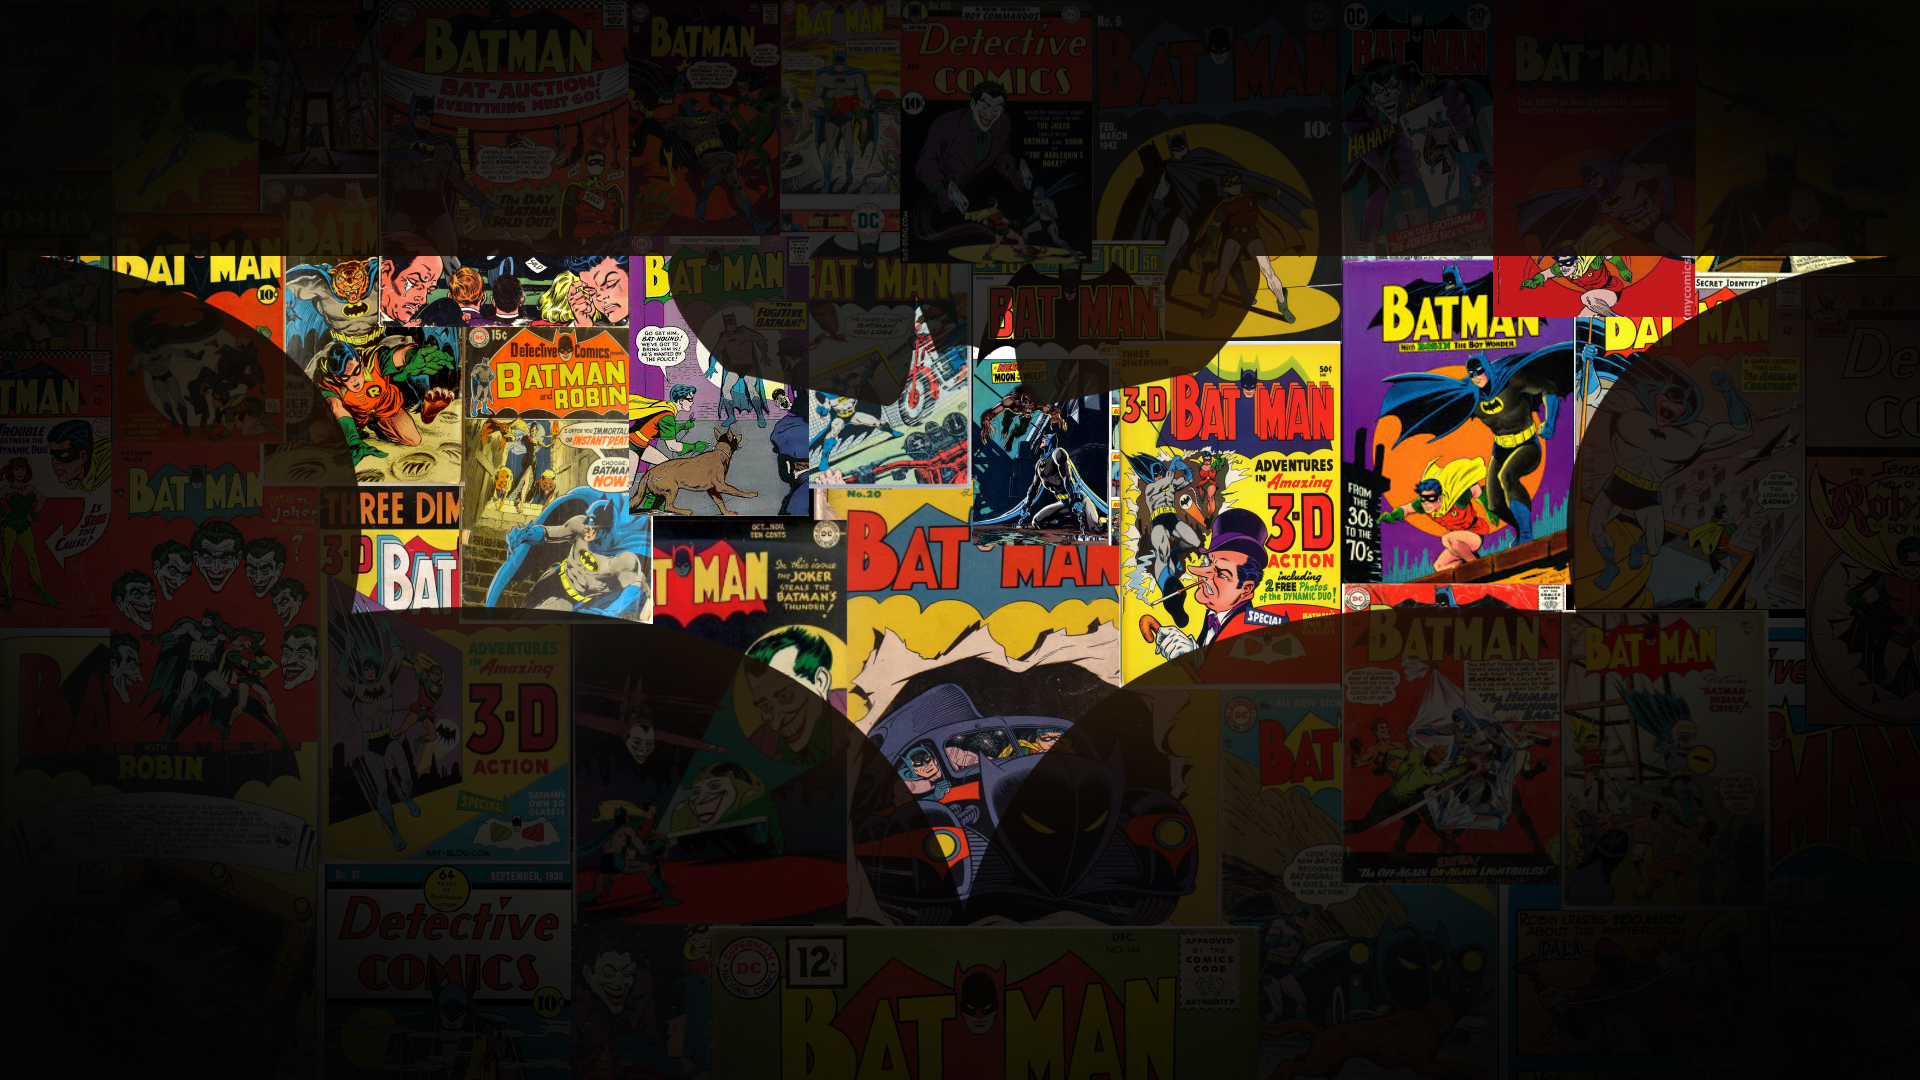 Batman Collage by Overlourd9 on DeviantArt